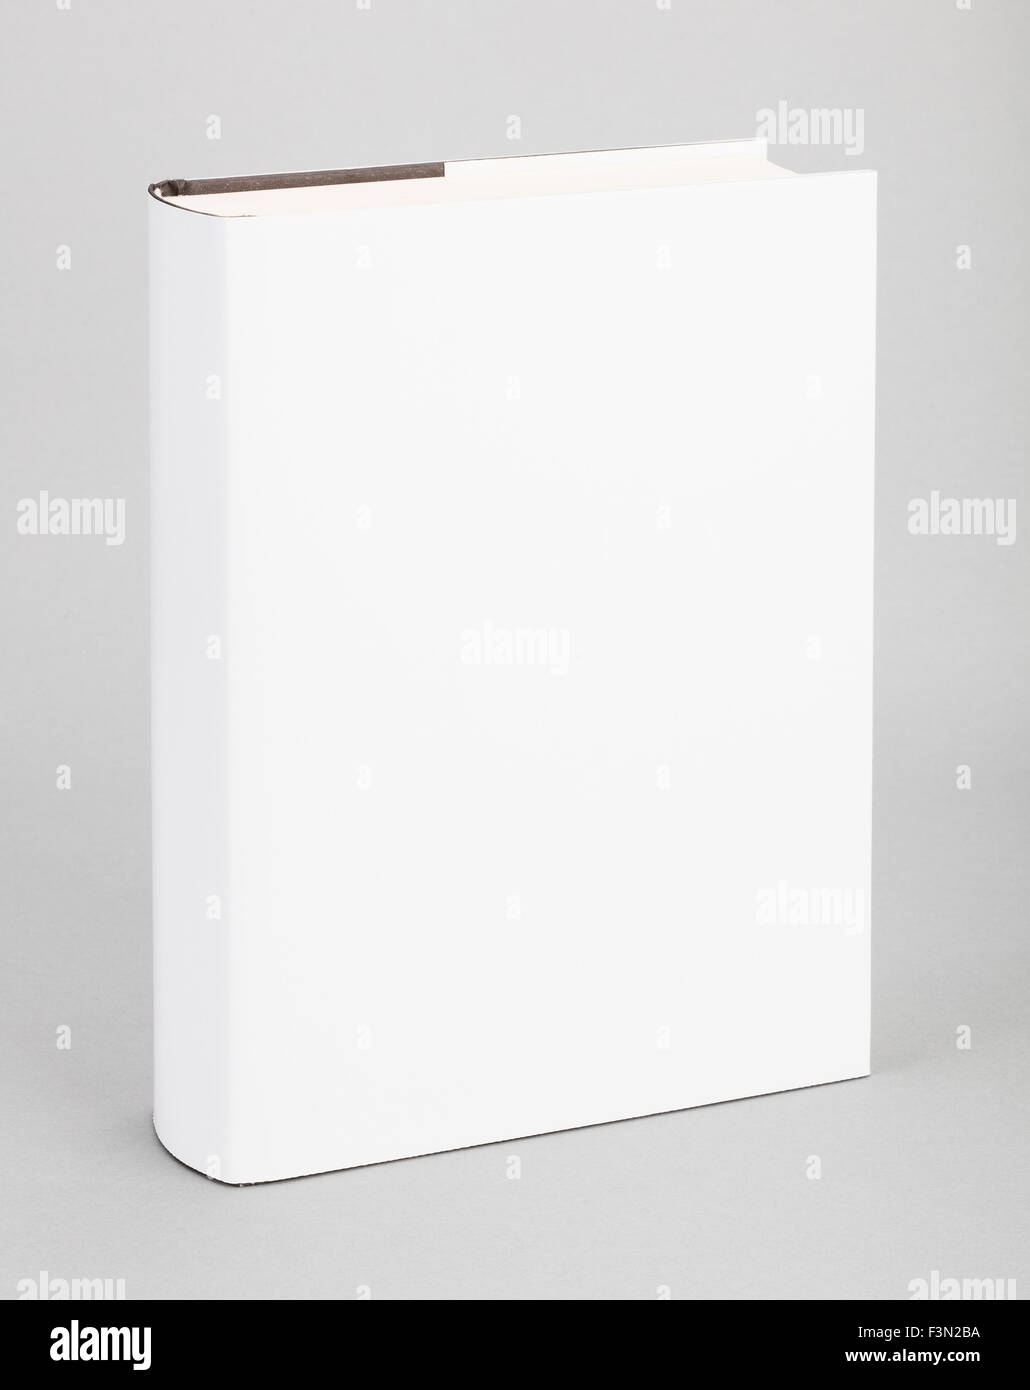 Thick Blank book with white cover - Stock Image